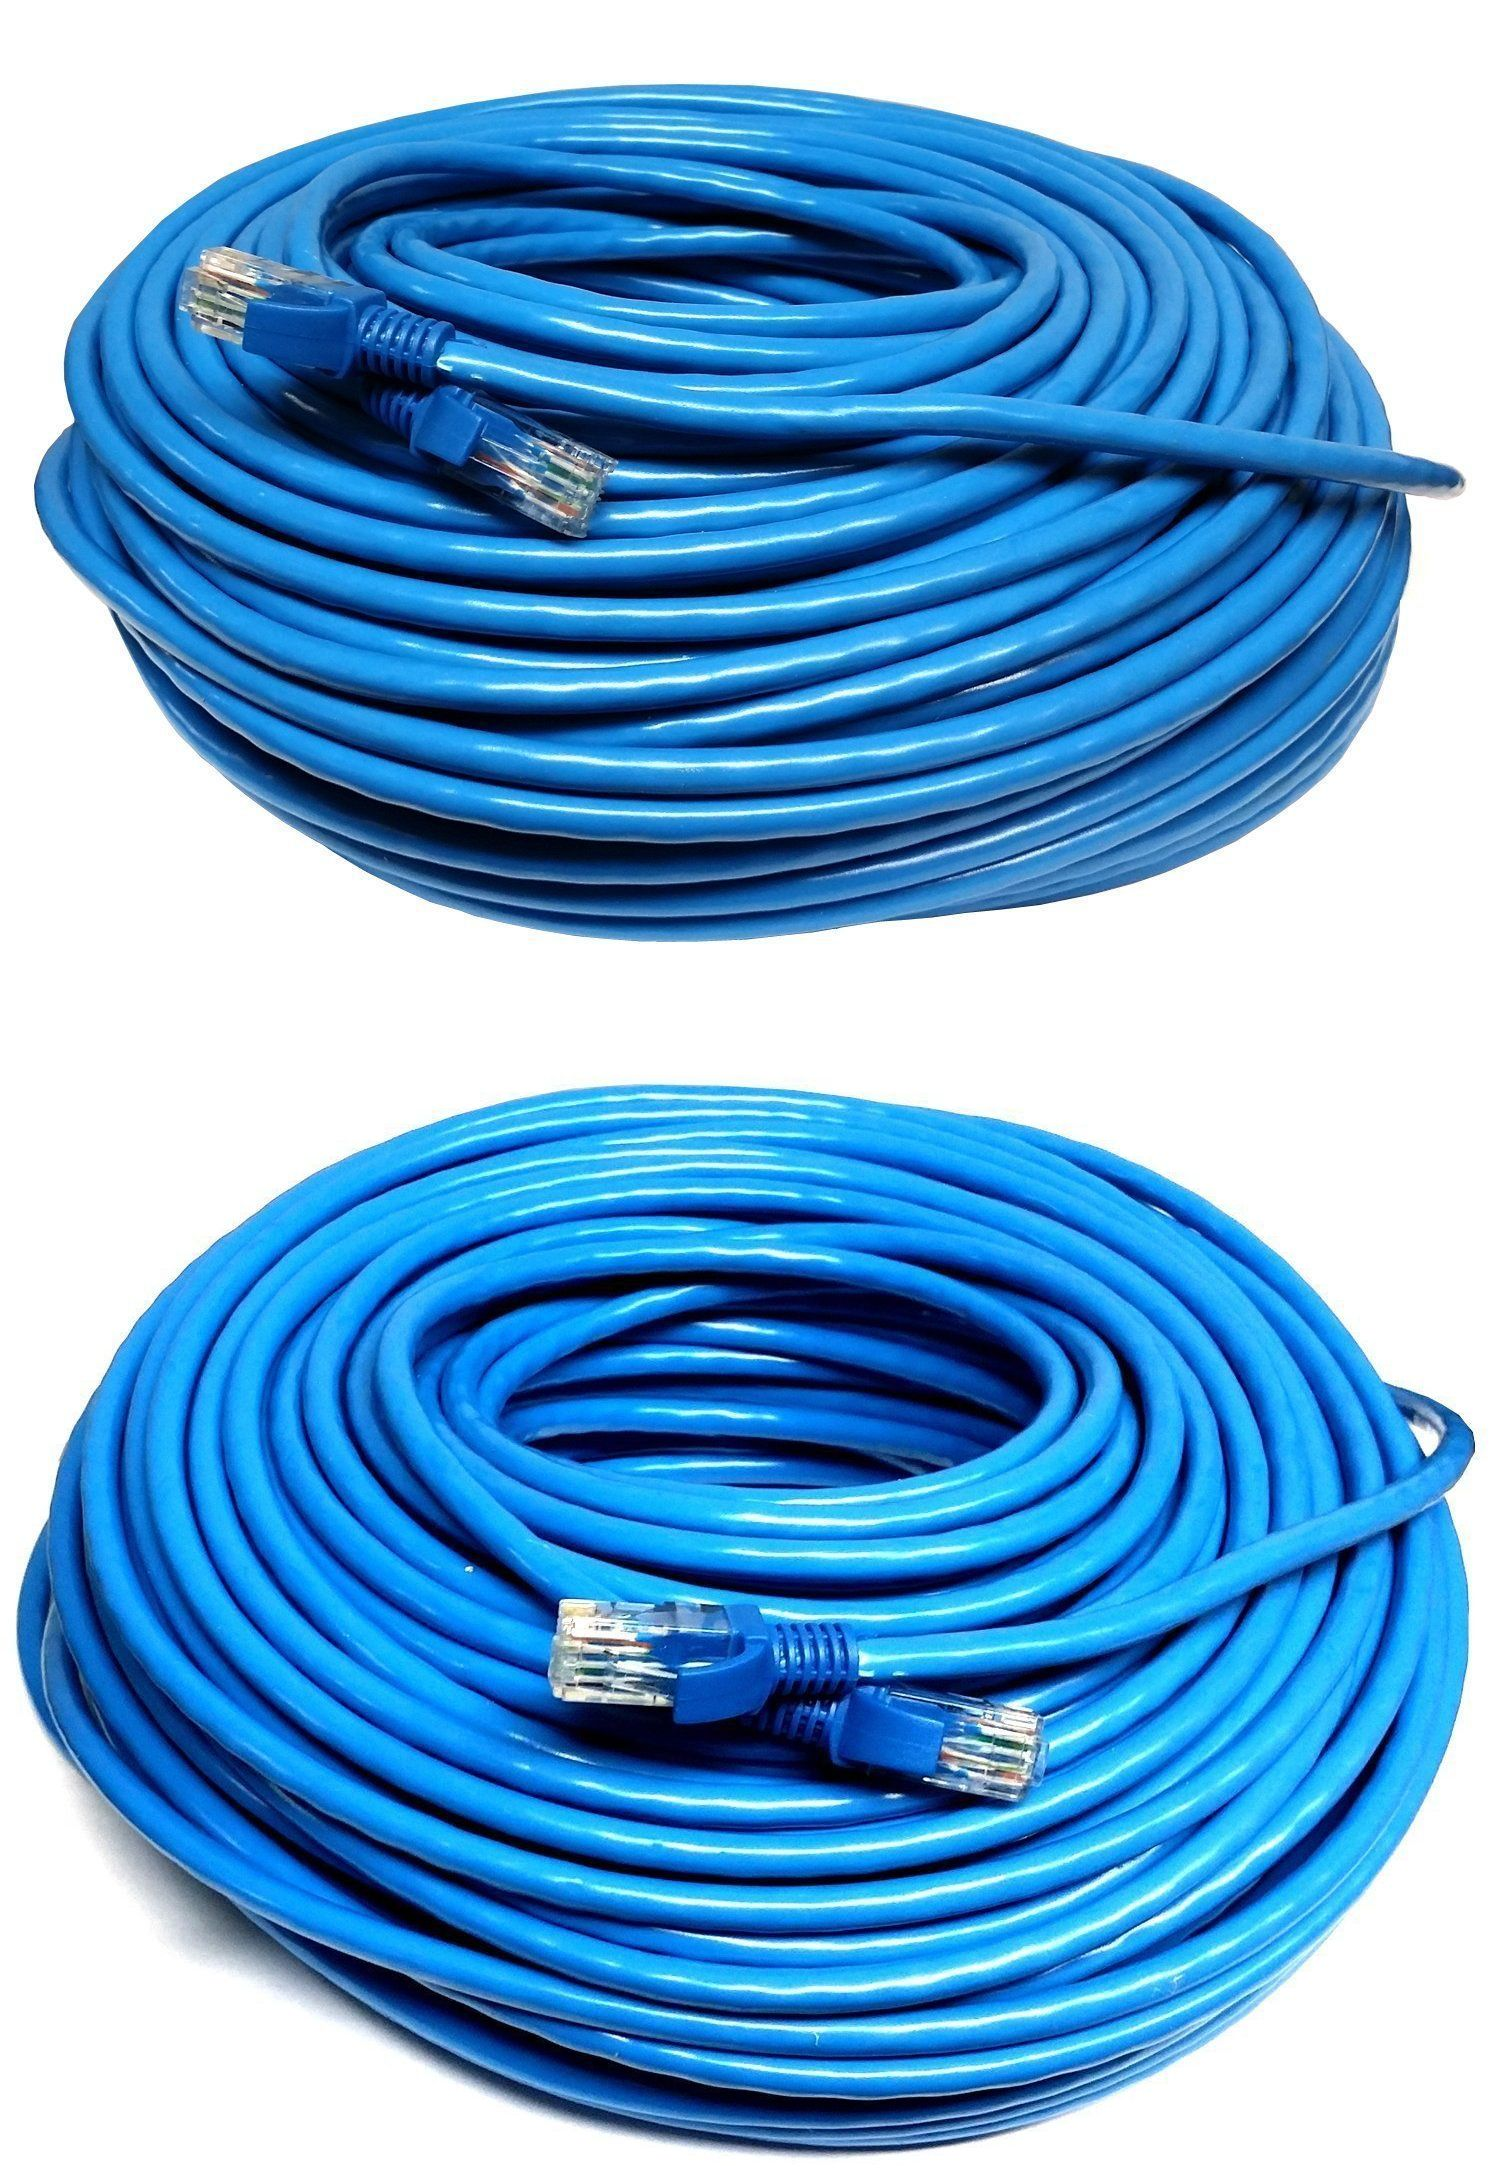 100ft 100 Ft Rj45 Cat6 Cat 6 High Speed Ethernet Lan Network Blue Patch Cable Networking Cables Rj45 Cable